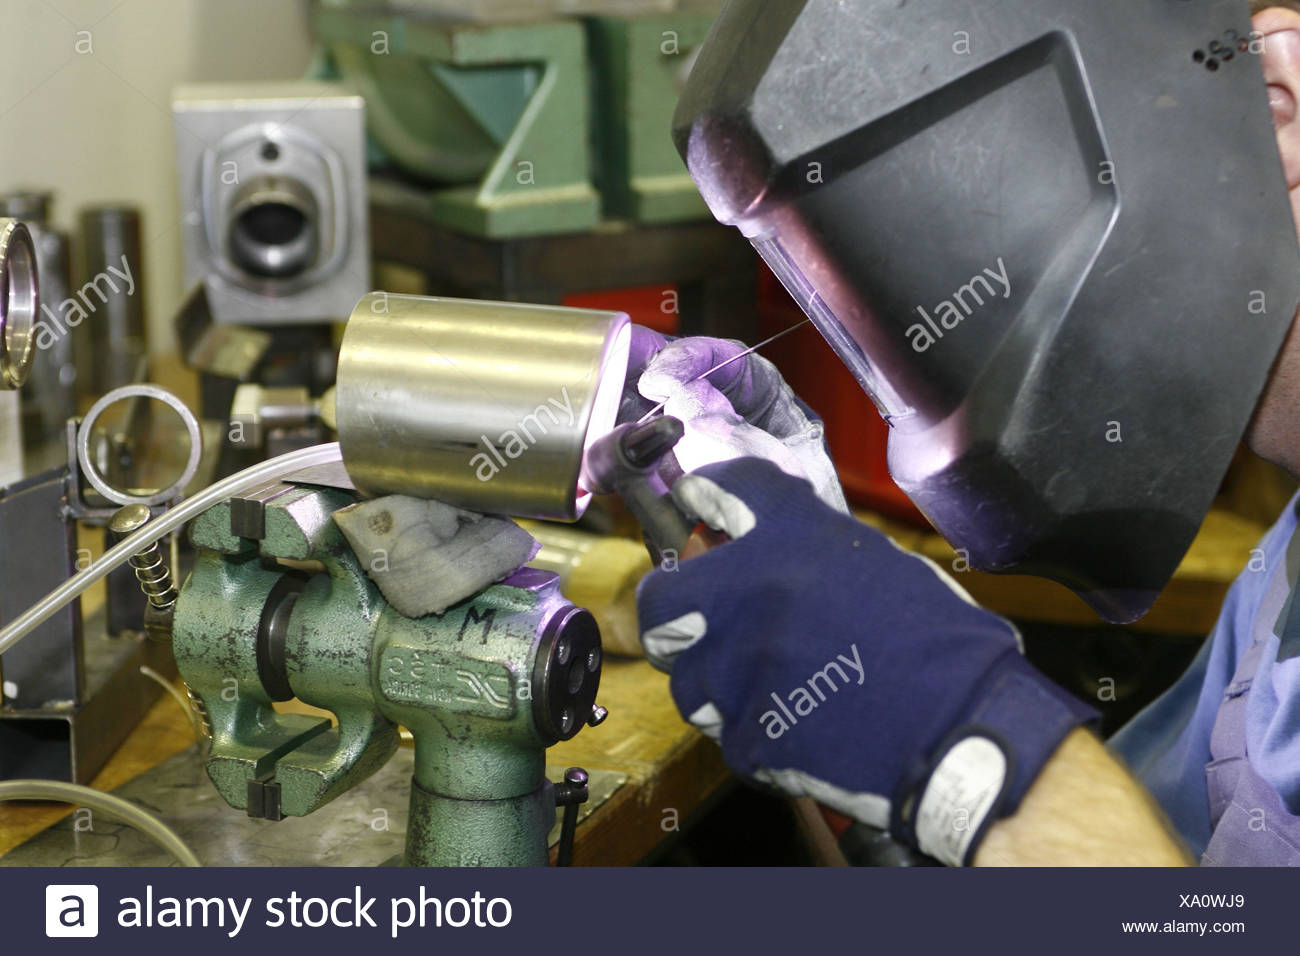 Exhaust Flame Stock Photos & Exhaust Flame Stock Images - Alamy